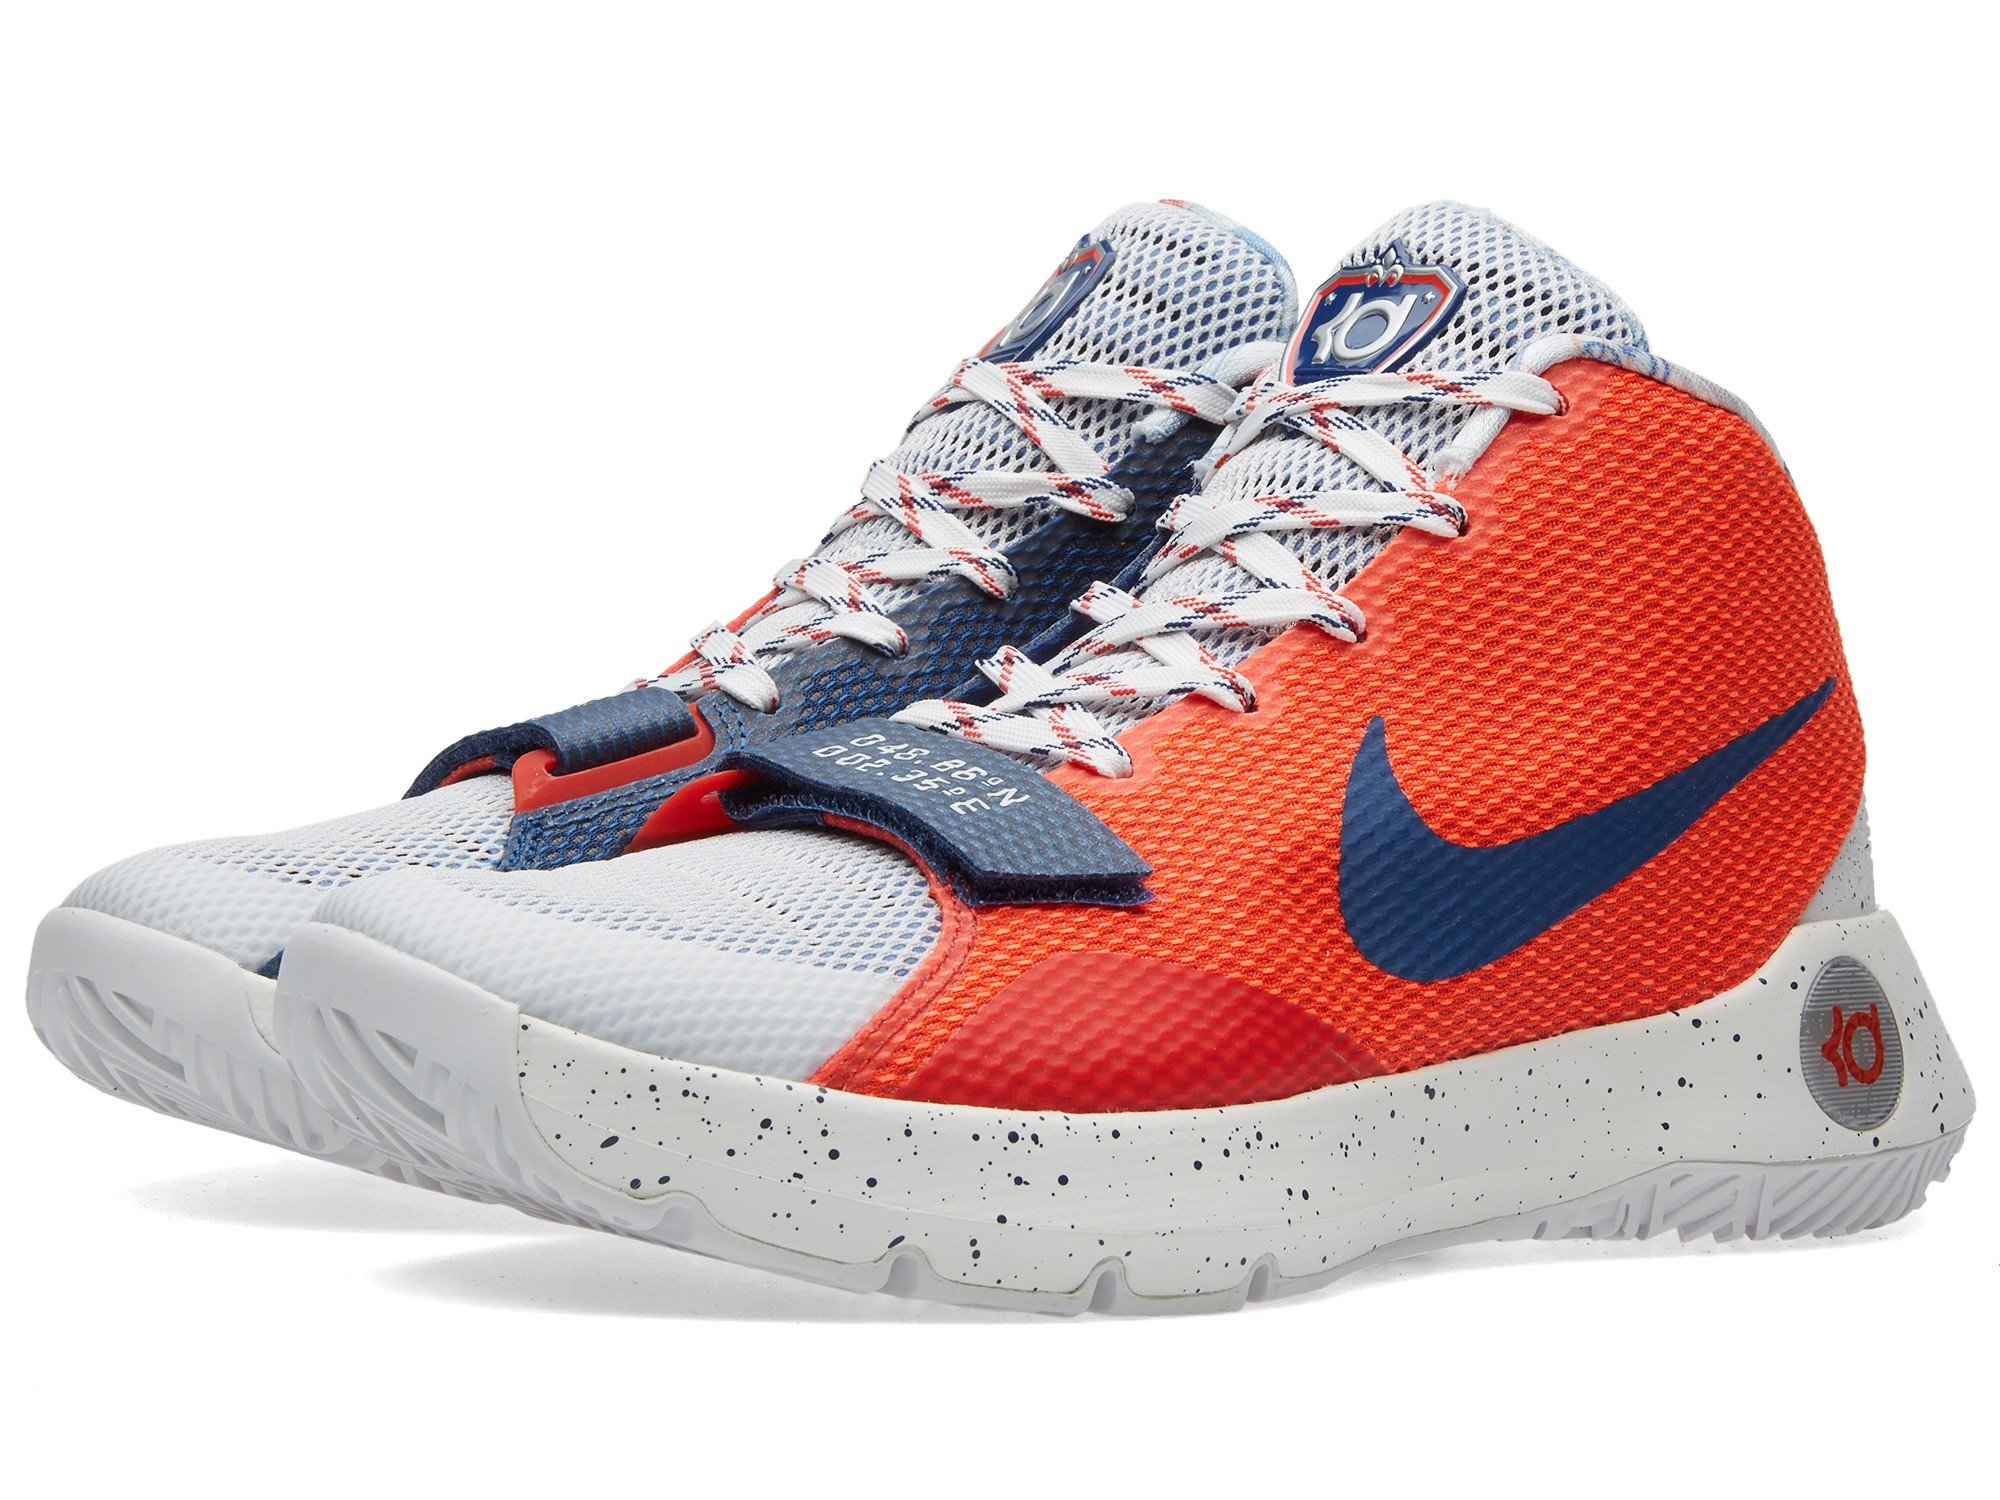 huge discount 3f544 d3656 ... low price nike kd trey 5 iii gets another rise release air 23 air  jordan release